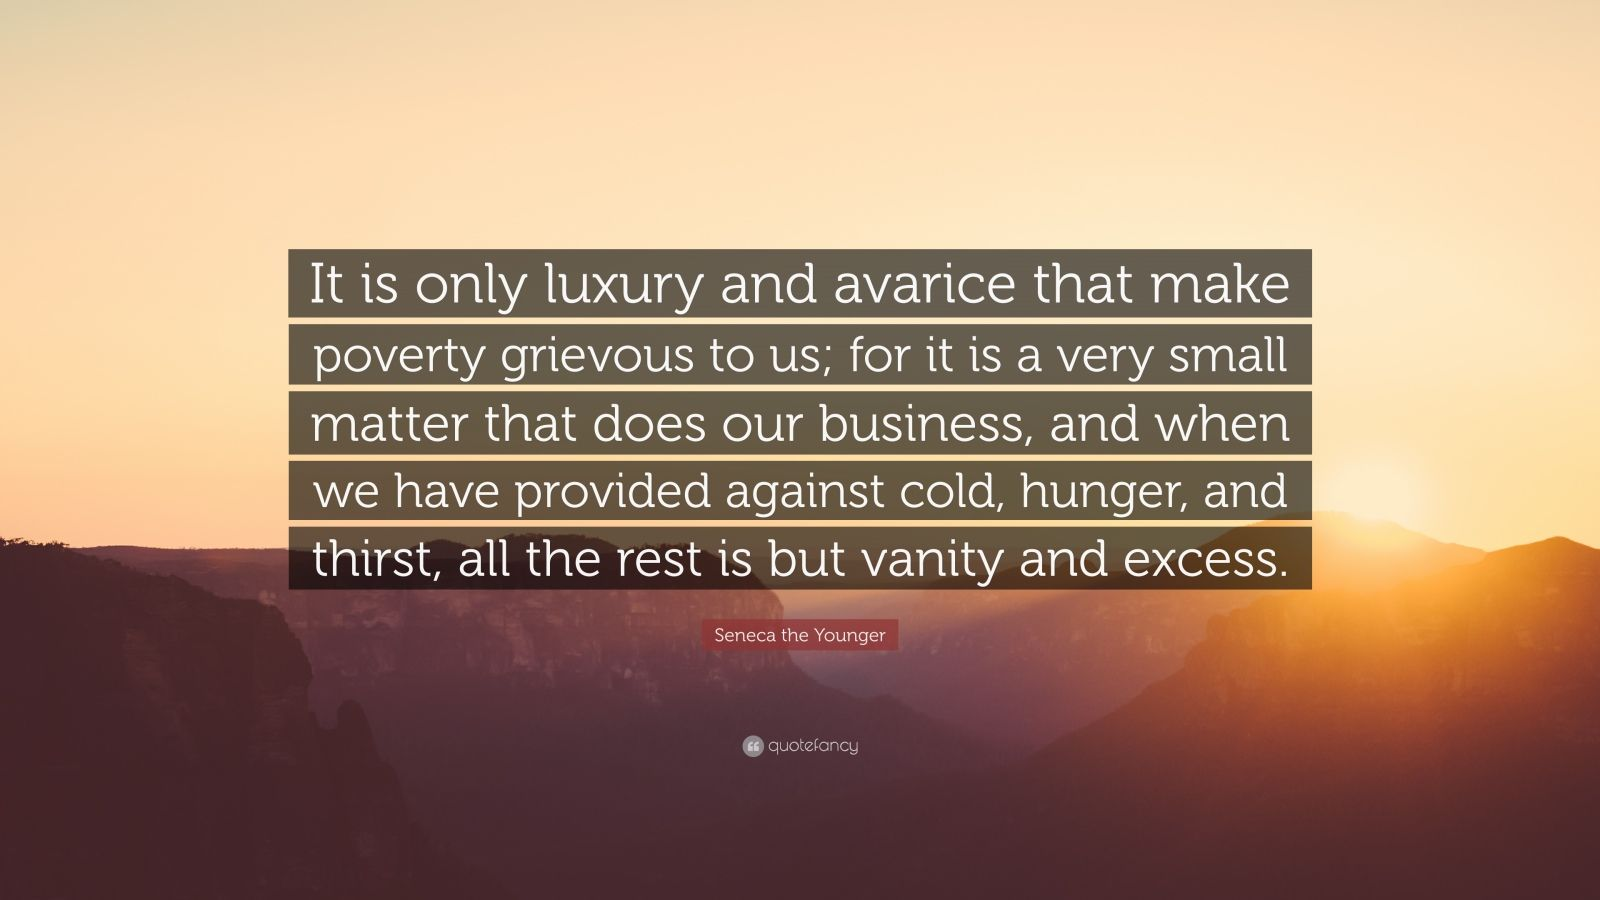 """Seneca the Younger Quote: """"It is only luxury and avarice that make poverty grievous to us; for it is a very small matter that does our business, and when we have provided against cold, hunger, and thirst, all the rest is but vanity and excess."""""""